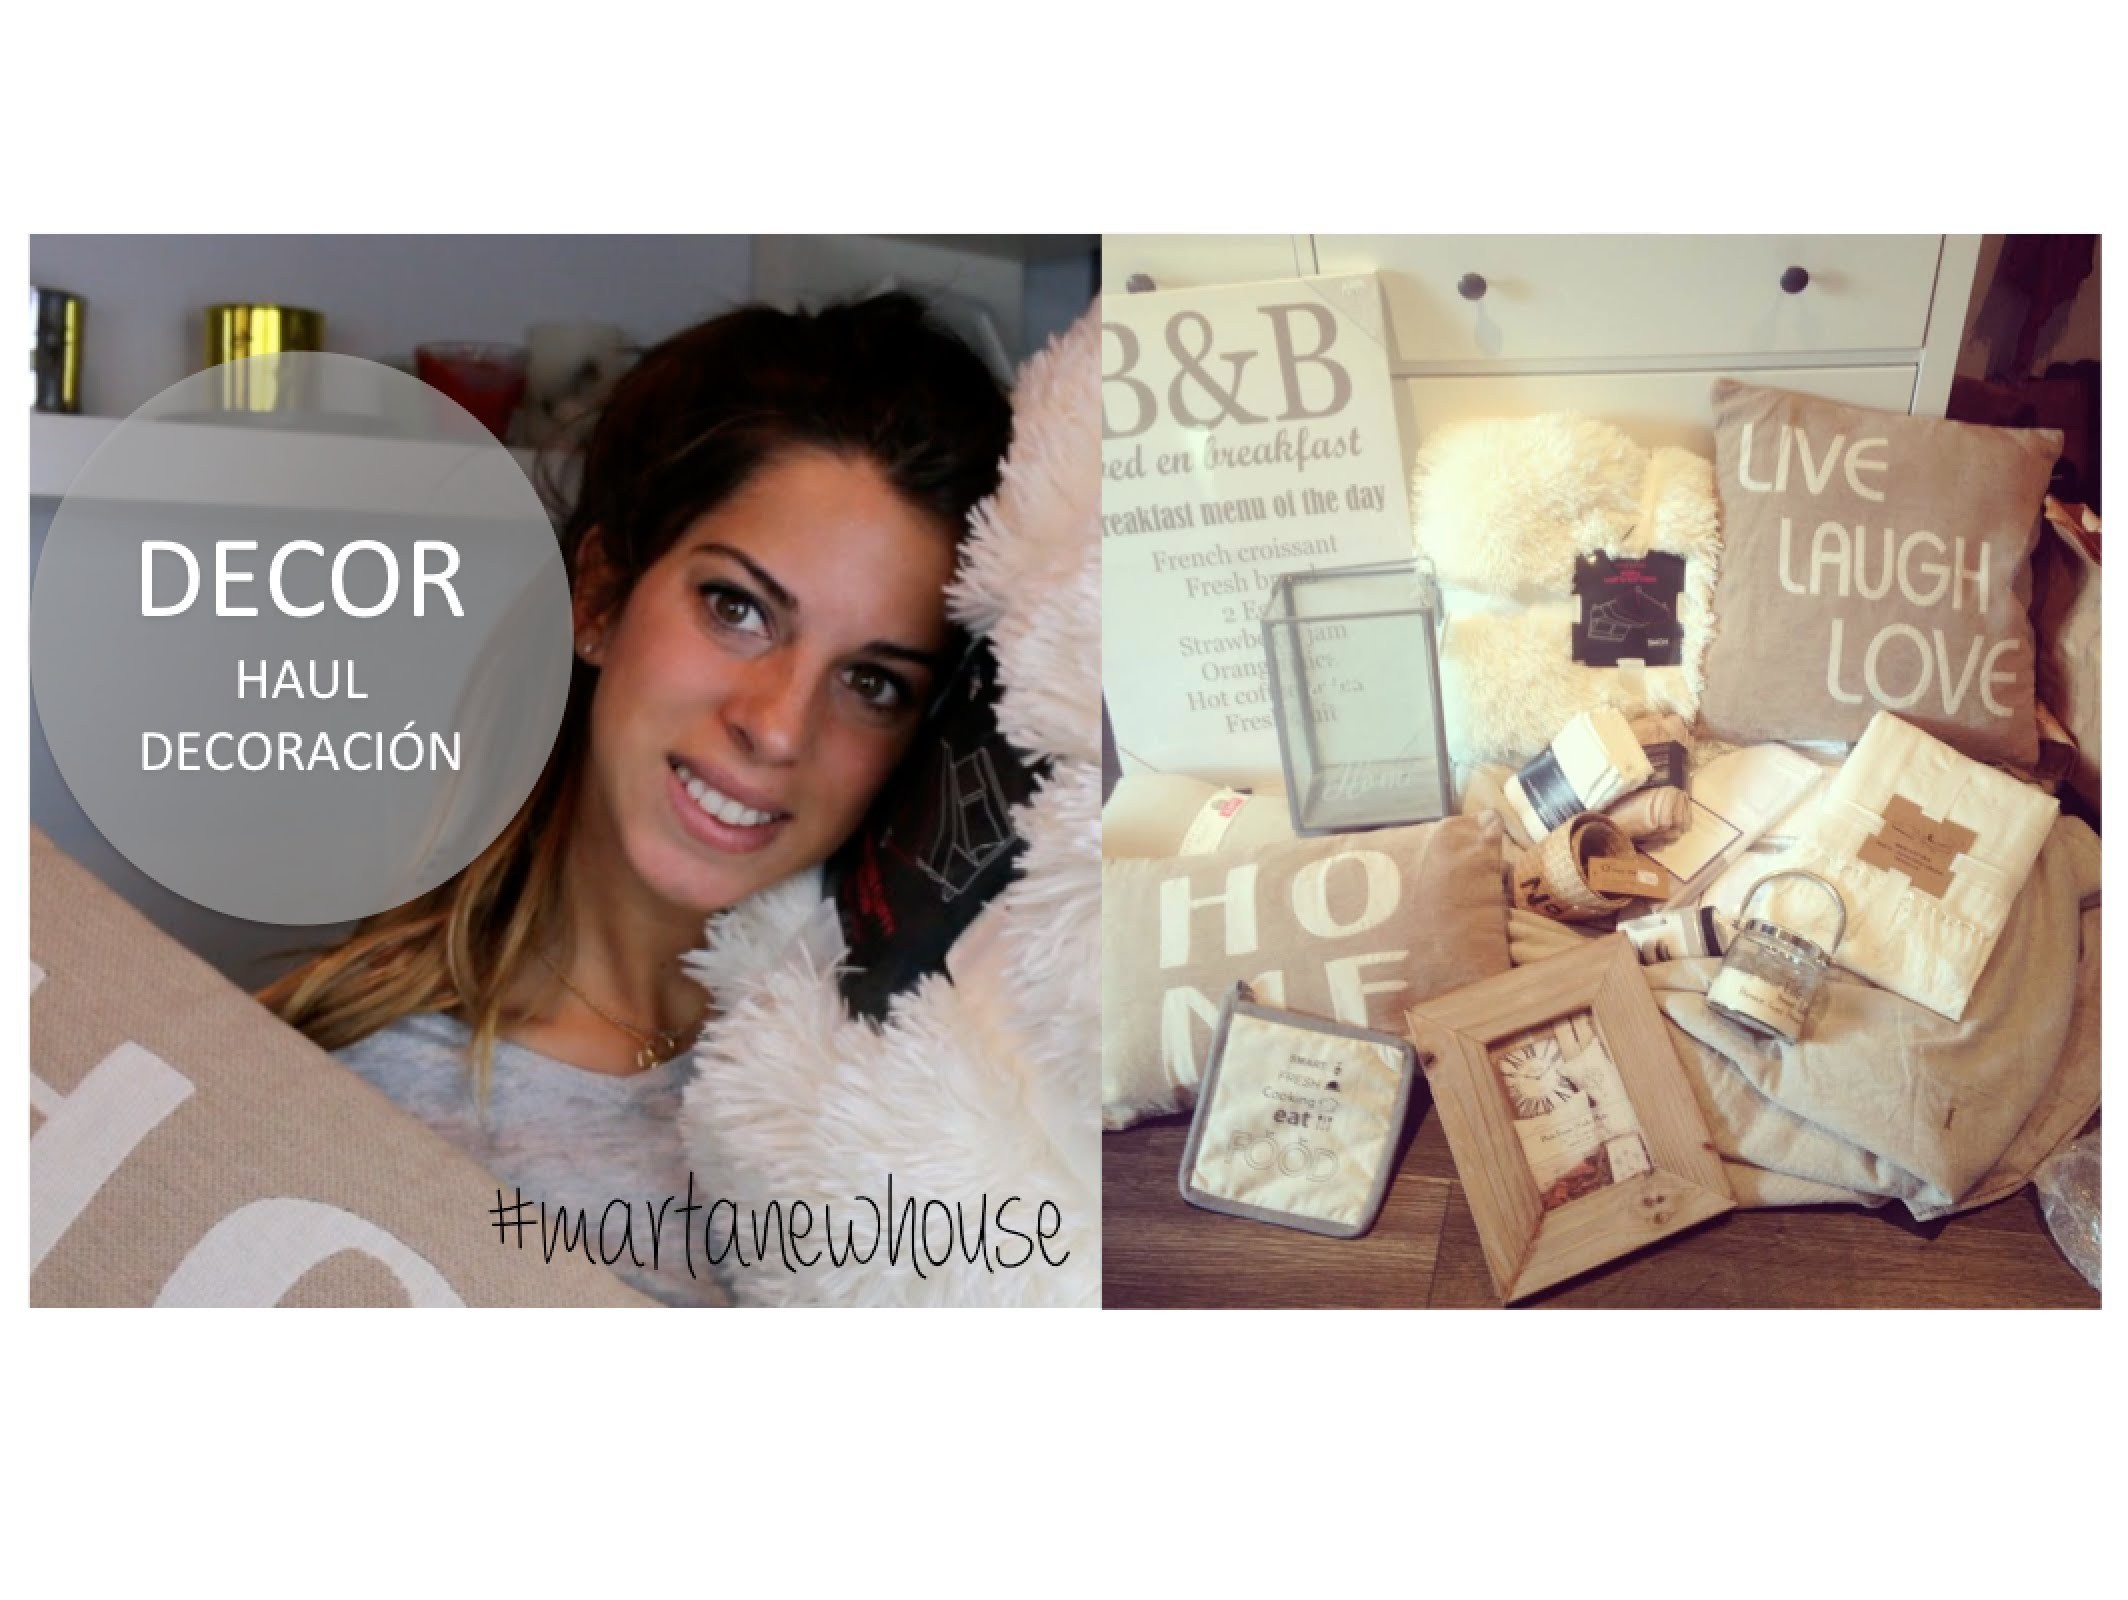 DECOR | Haul decoración